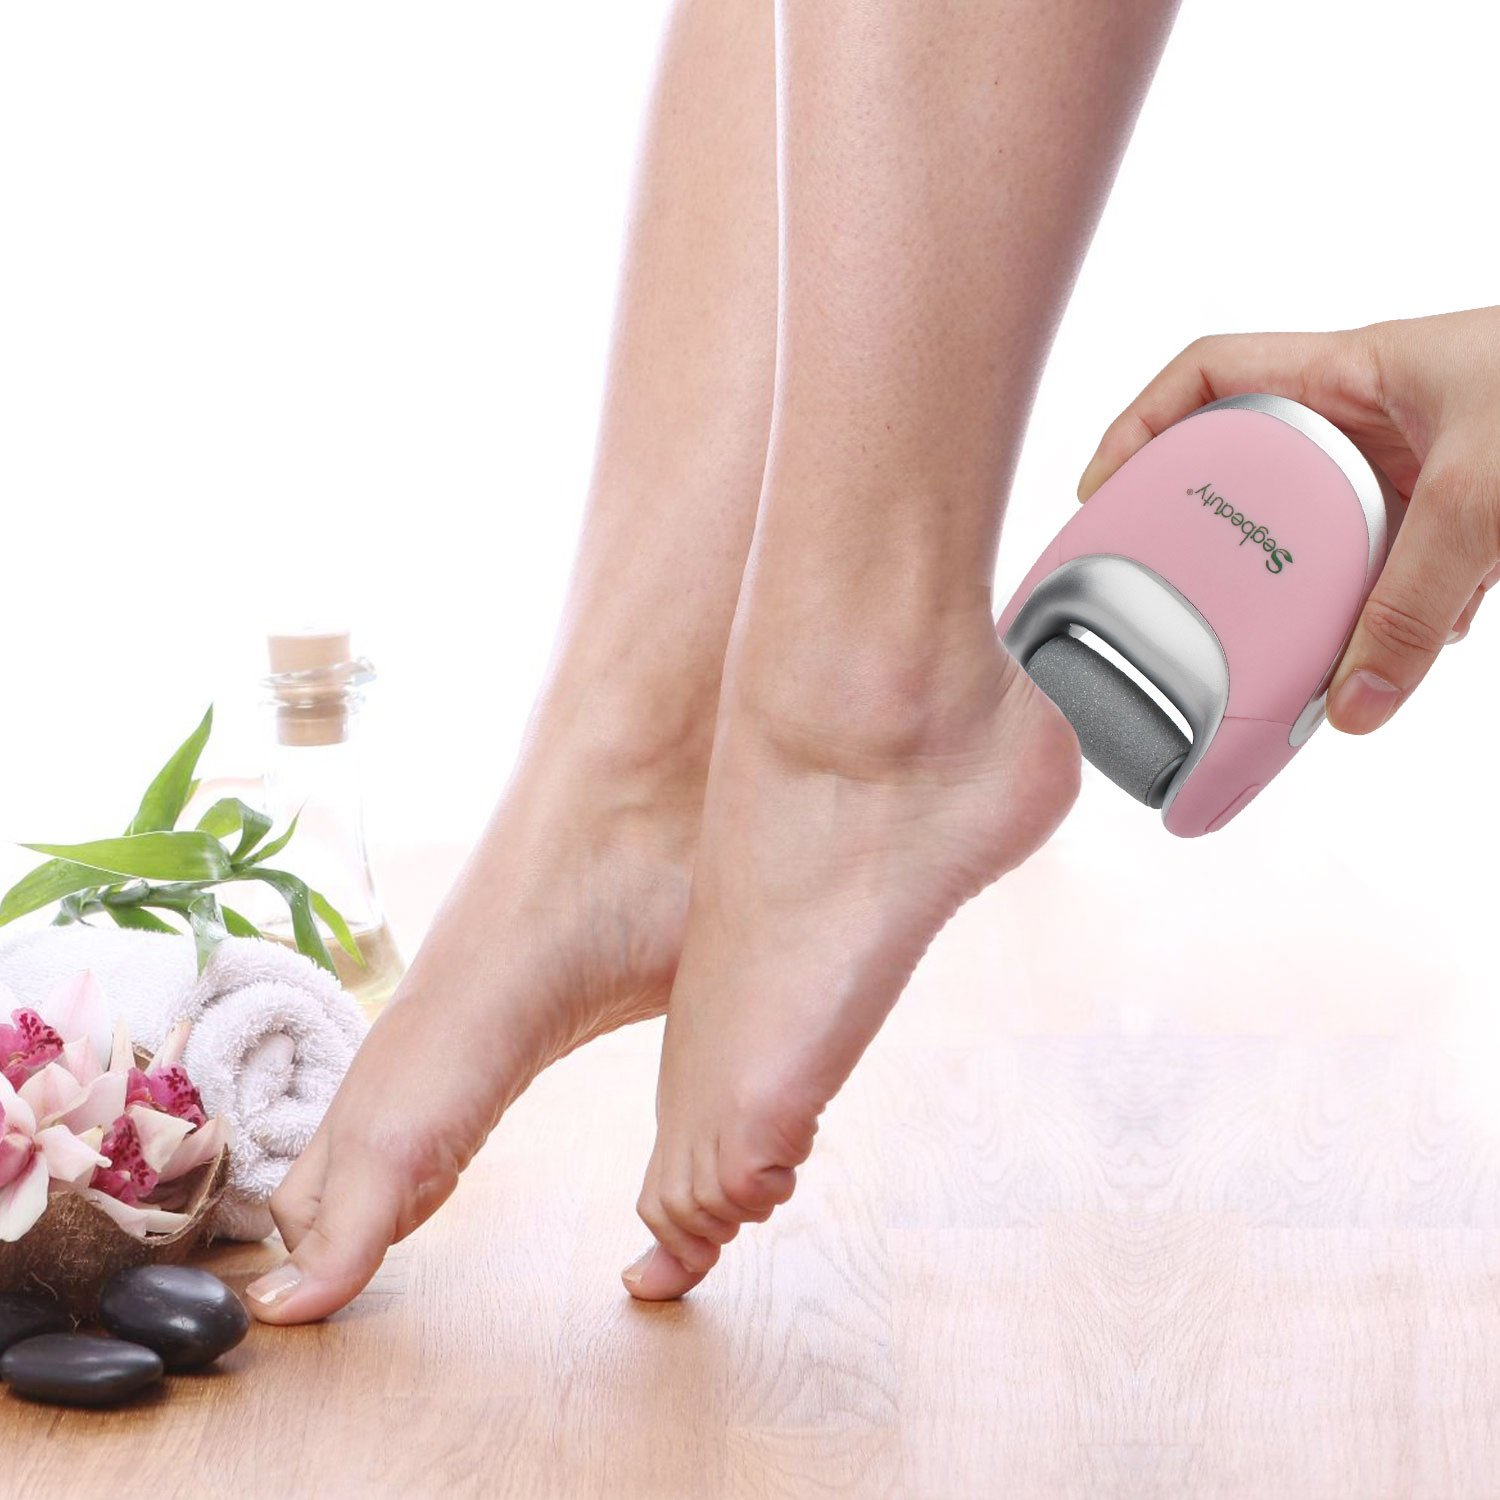 Segbeauty Elecric Callus Remover, Portable USB Rechargeable Pedicure Callus Instant Clear Remover, Travel Friendly, 2 Speeds Foot Care Callus Eliminator Foot File for Cracked Hard Dehisced Heels Skin by Segbeauty (Image #3)